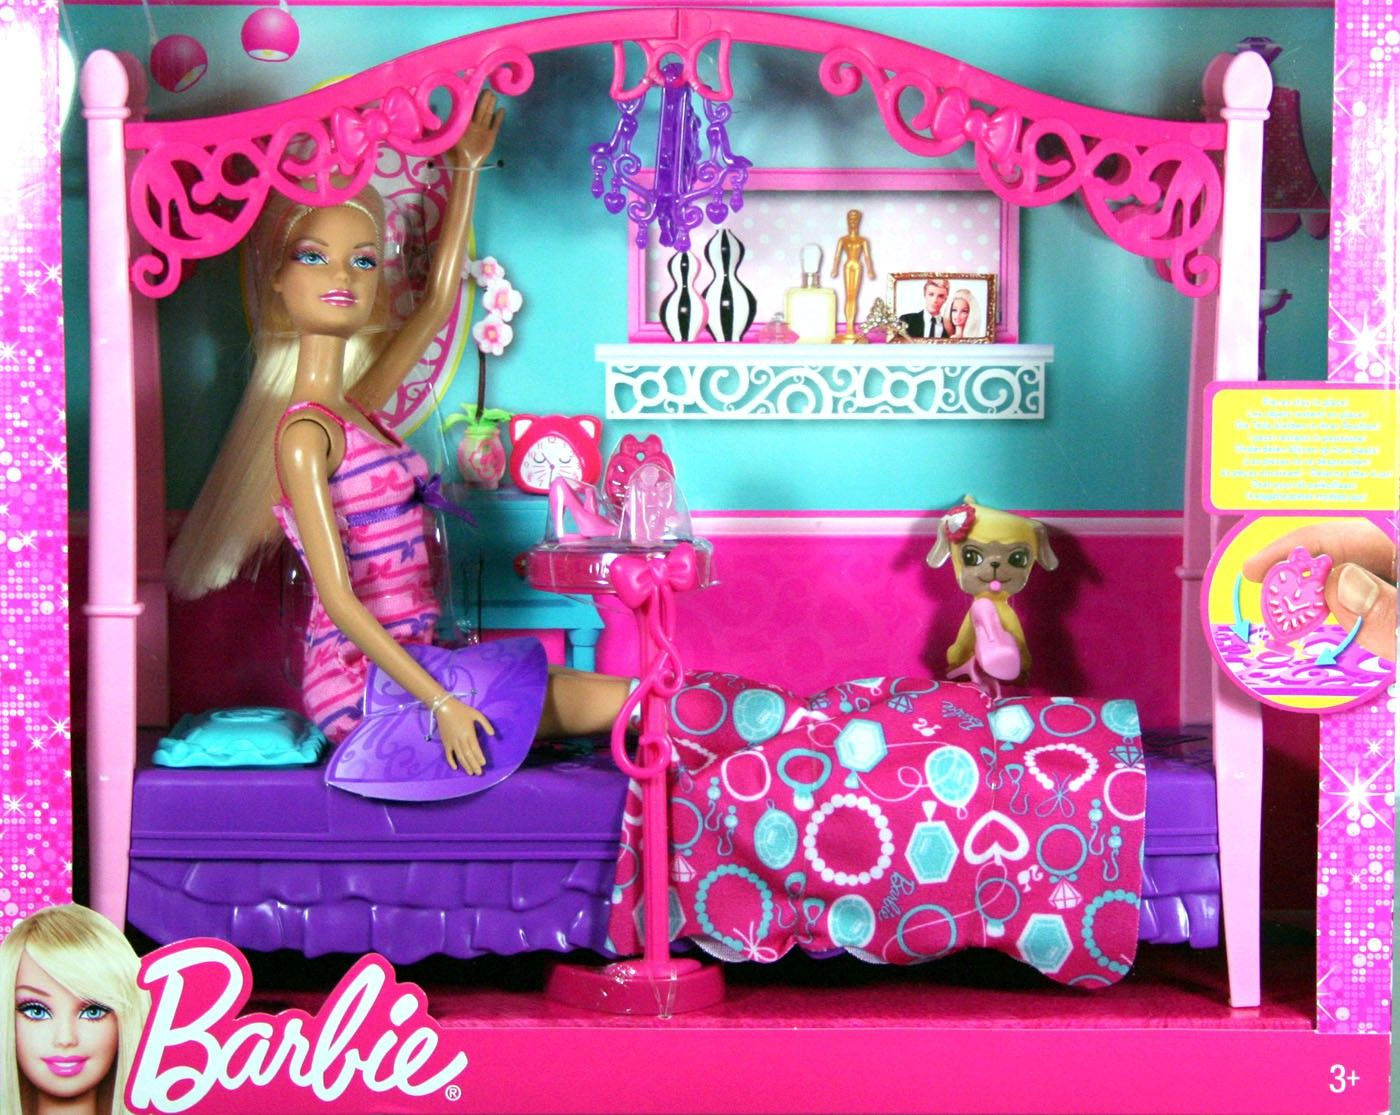 Barbie Puppe Schlafzimmer Set, Bett, Möbel, Mattel X7941 | Barbie ...